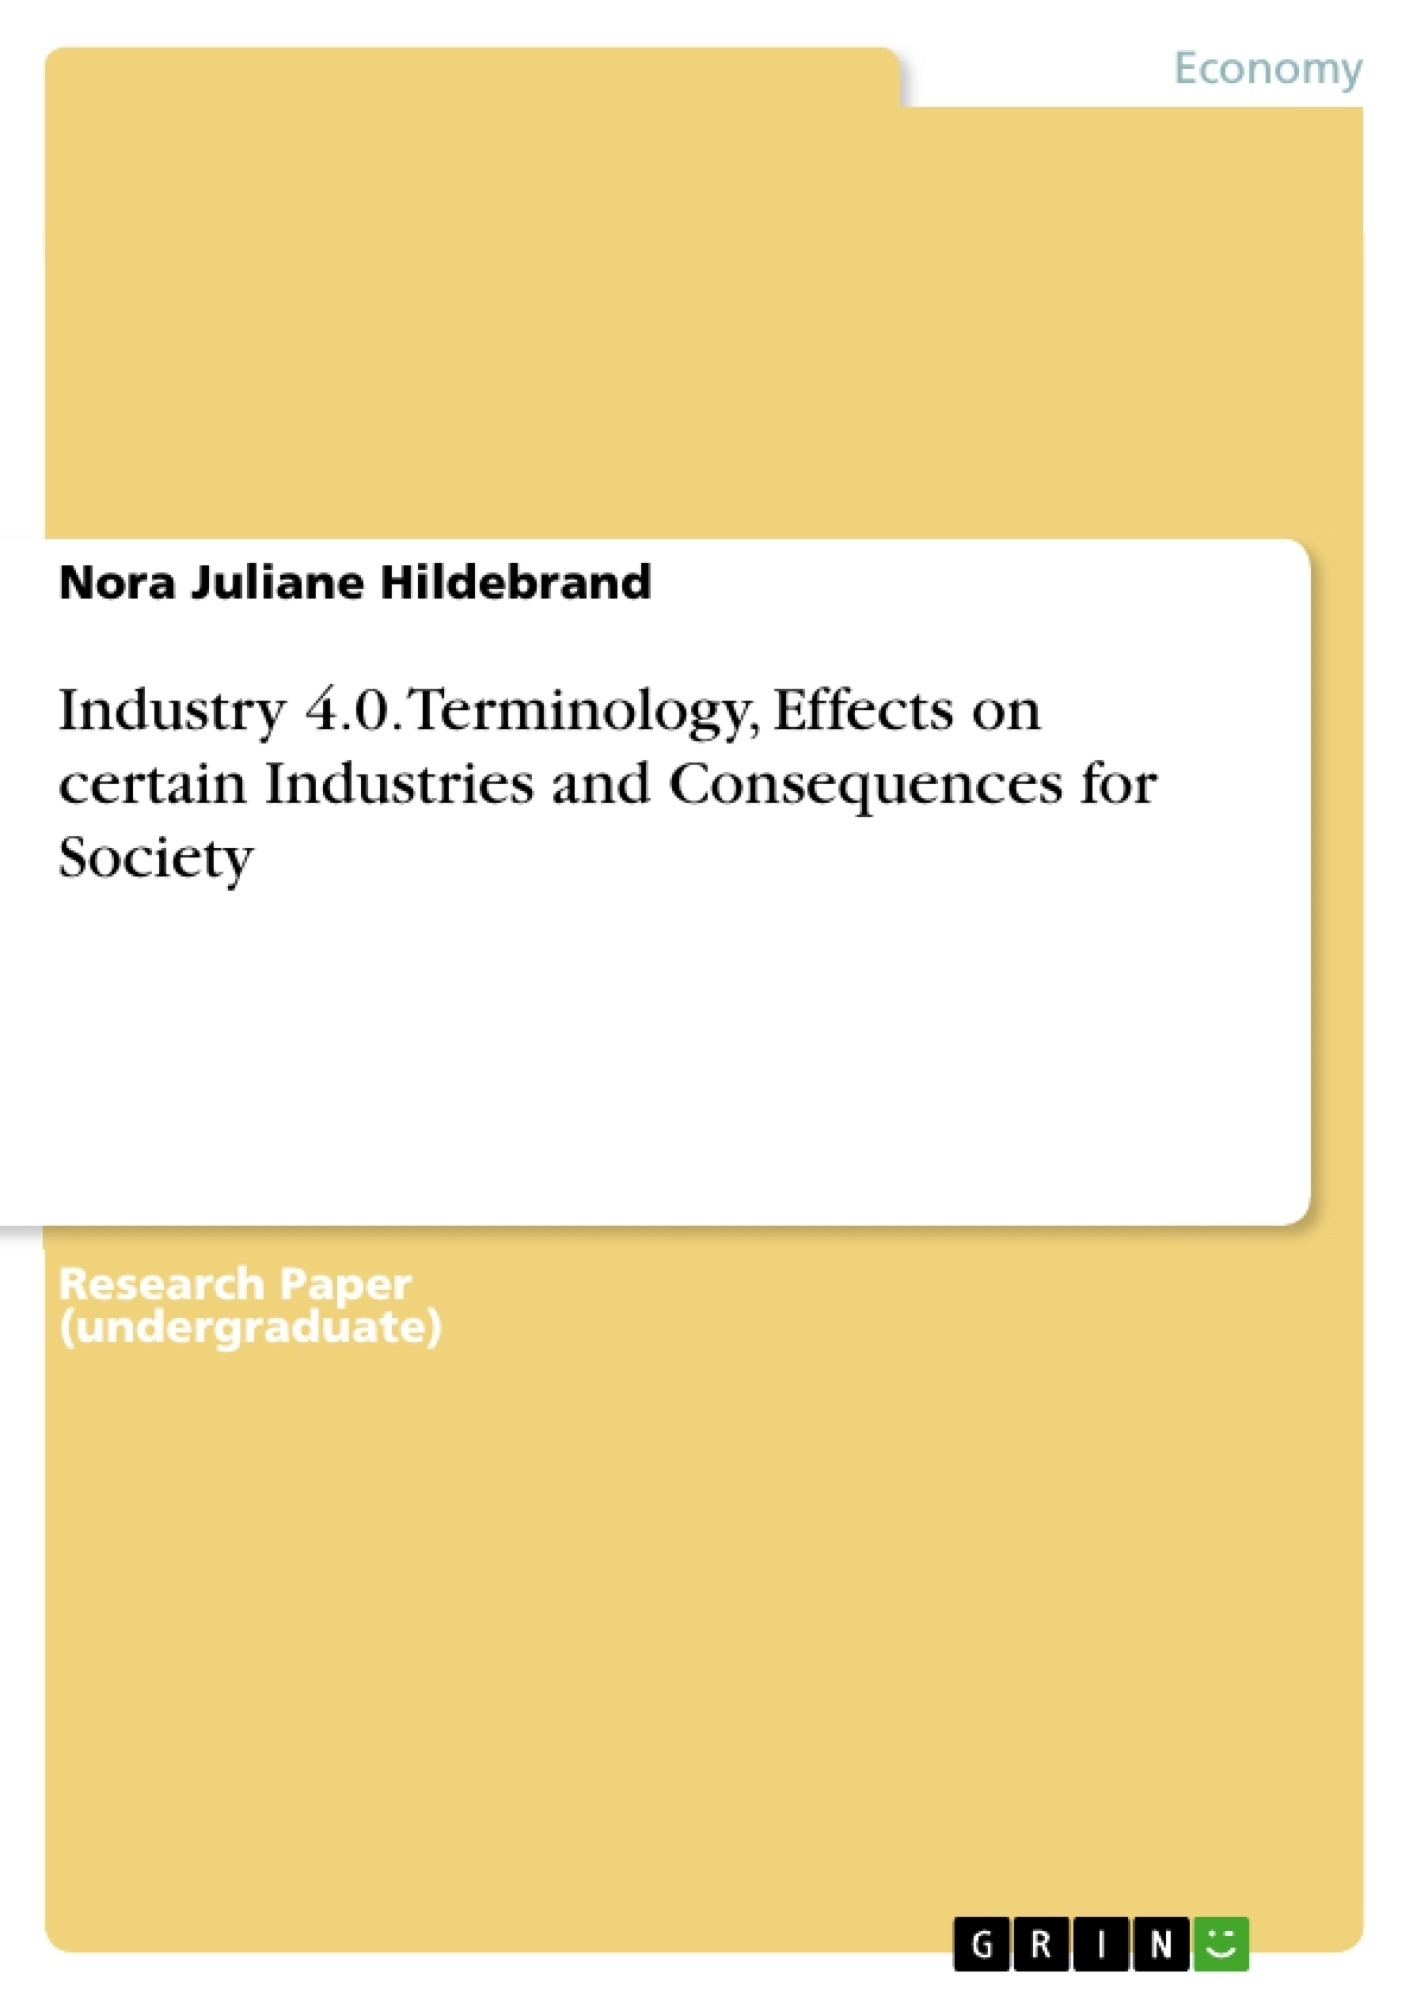 Title: Industry 4.0. Terminology, Effects on certain Industries and Consequences for Society